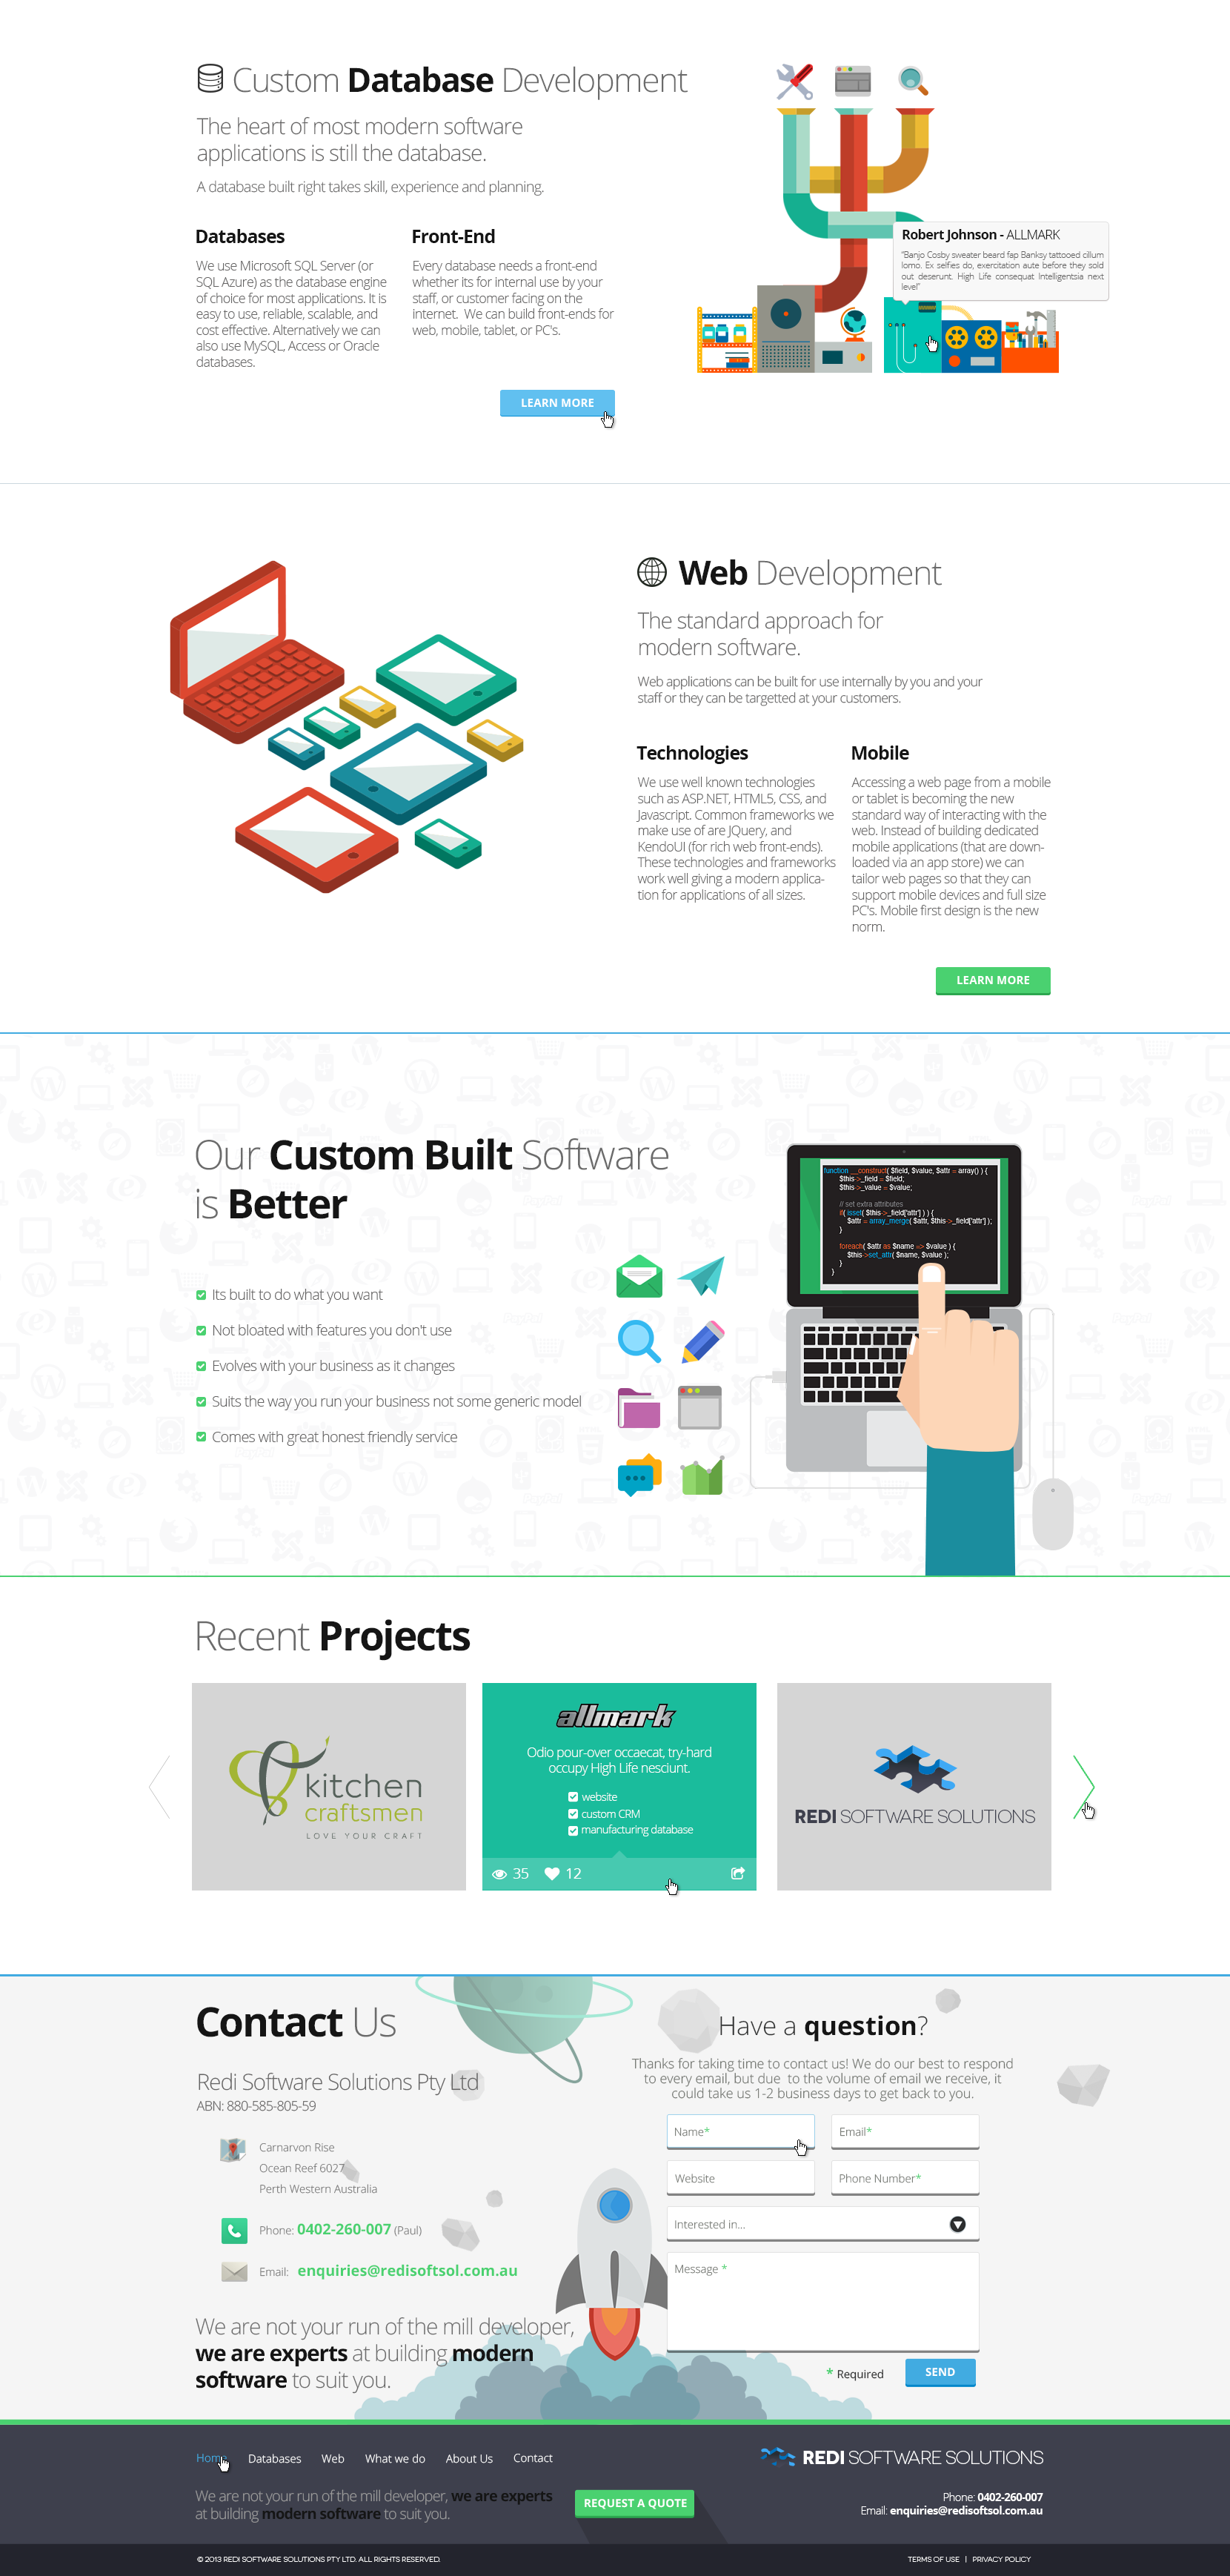 New single page website design for REDI Software